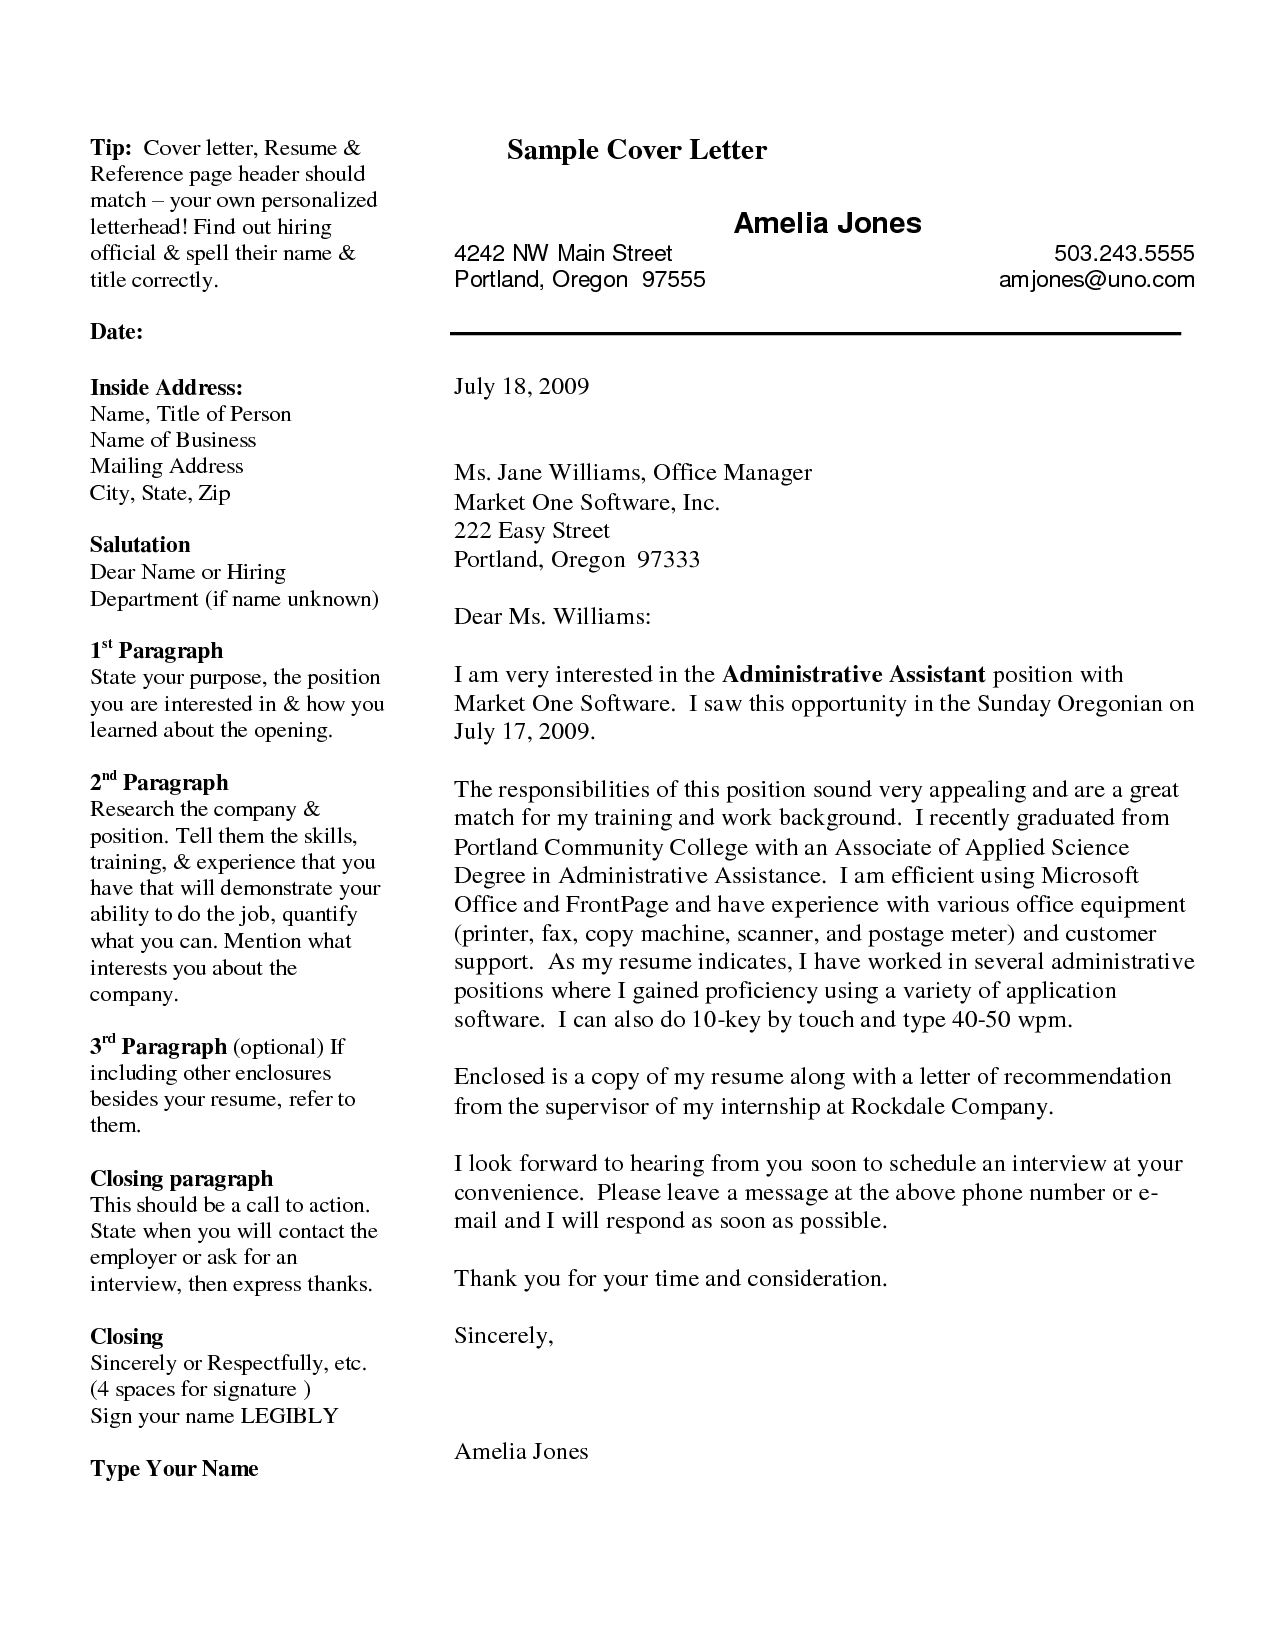 professional resume cover letter samplesprofessional resume cover letter samples professional resume cover letter sampleshow - Are Cover Letters Necessary